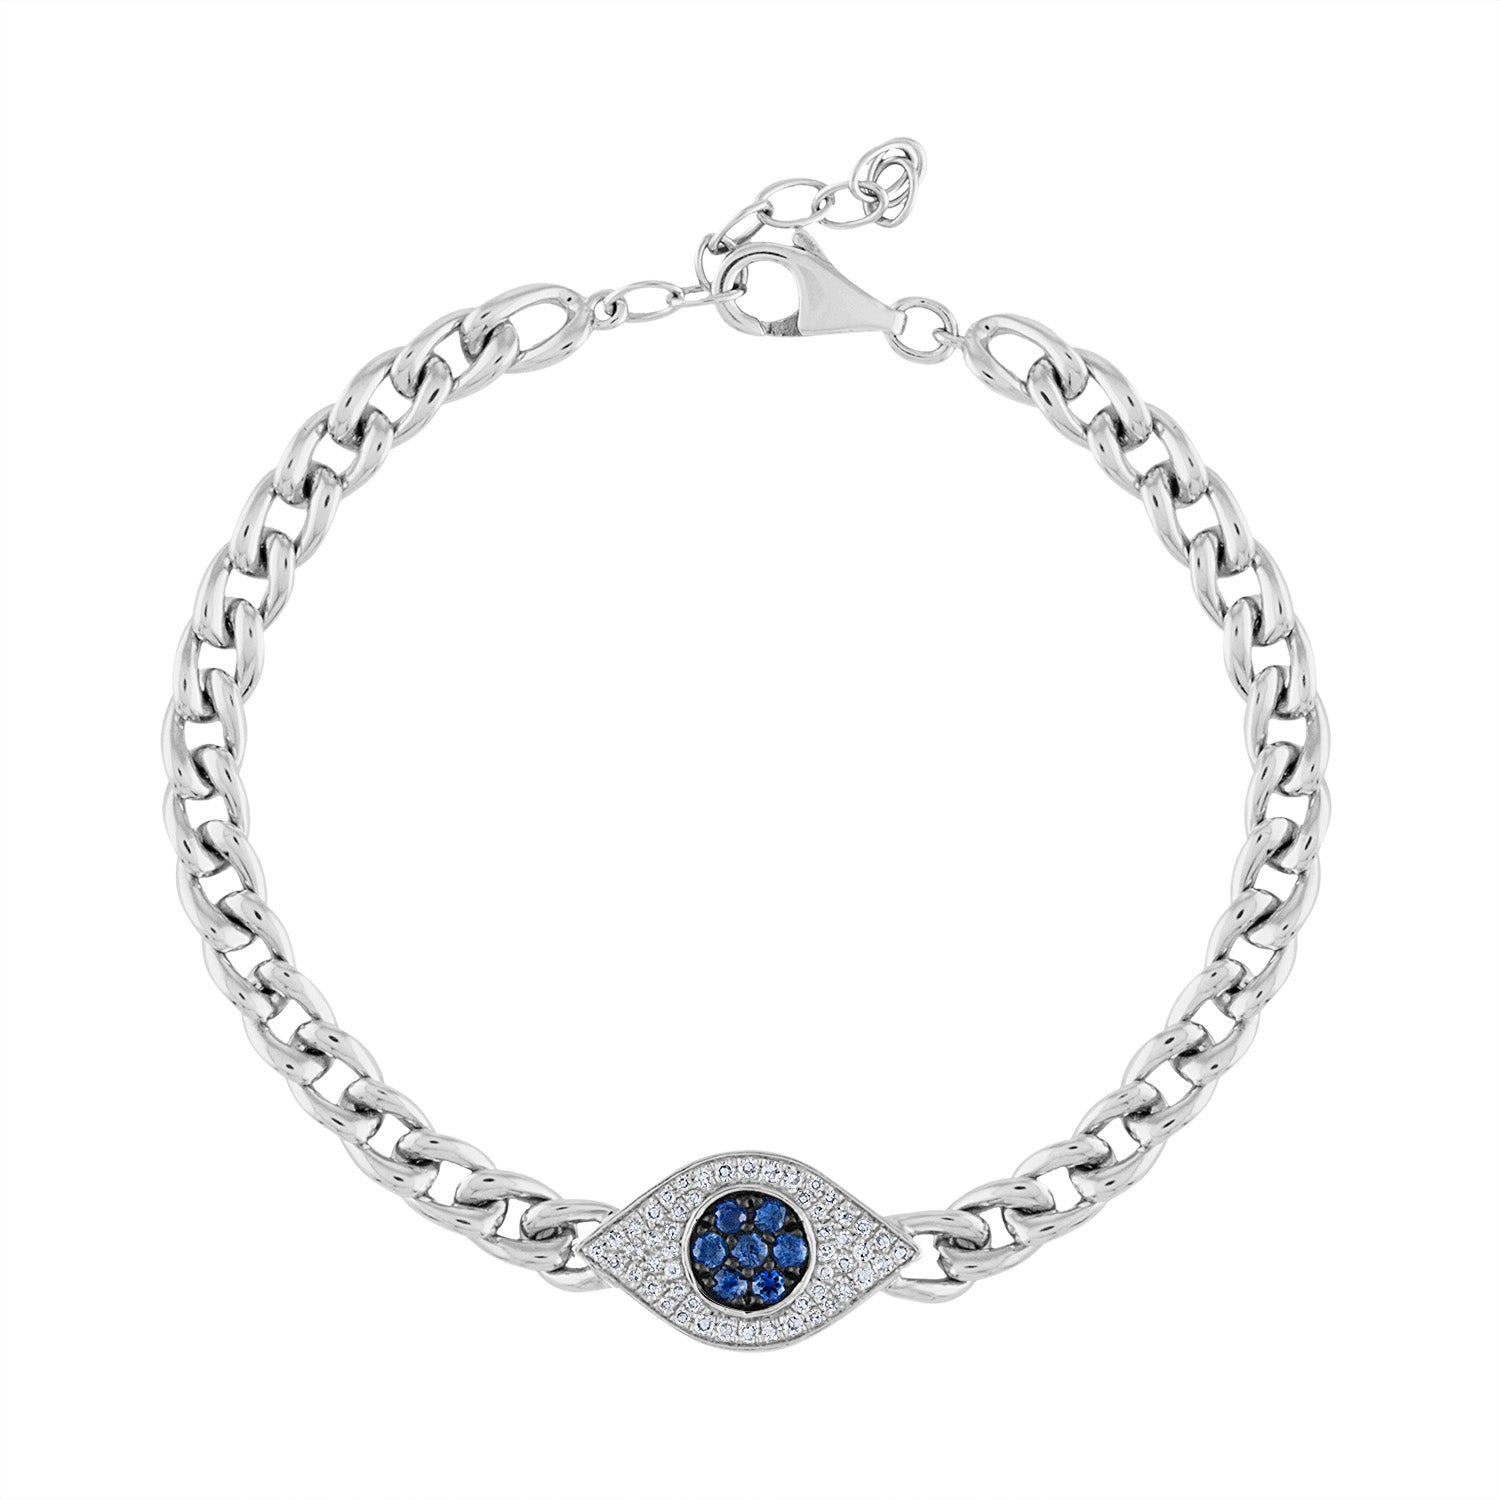 14KT GOLD DIAMOND AND BLUE SAPPHIRE EVIL EYE LINK BRACELET